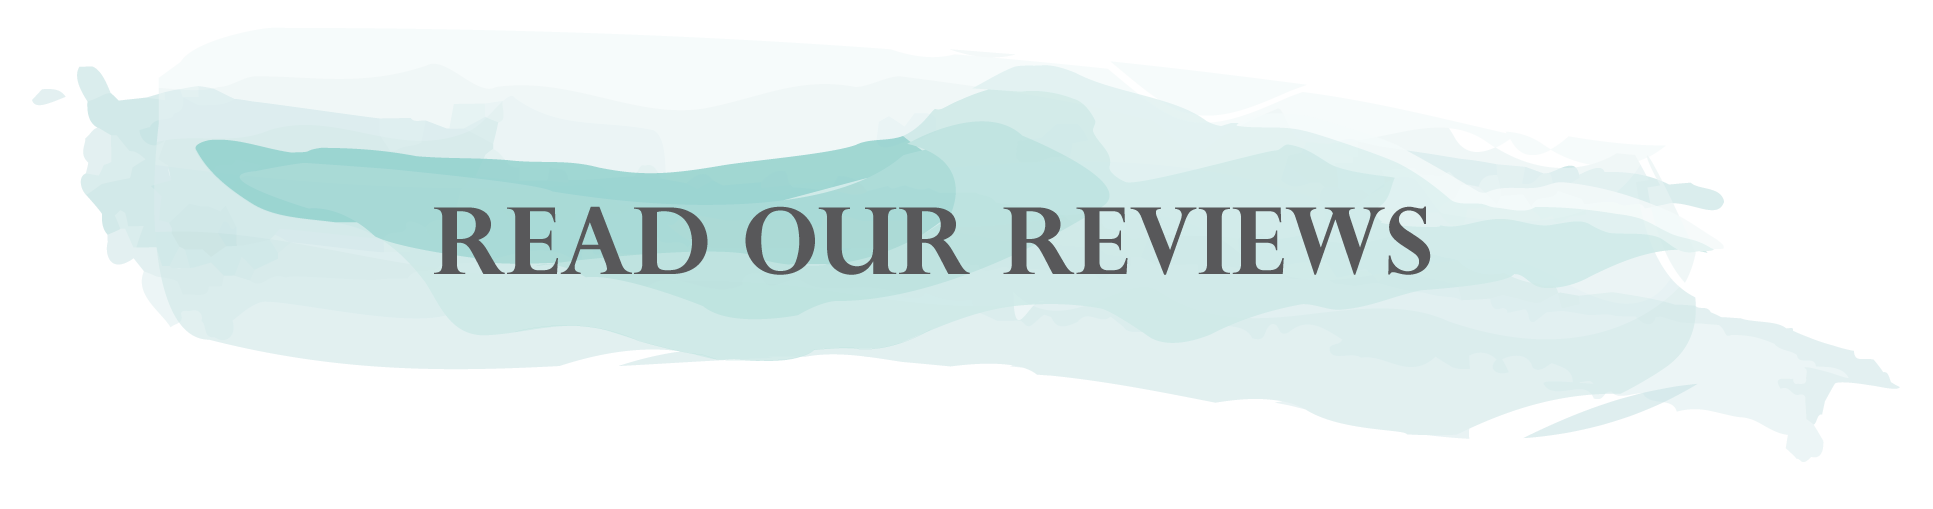 AE_review_button-02.png